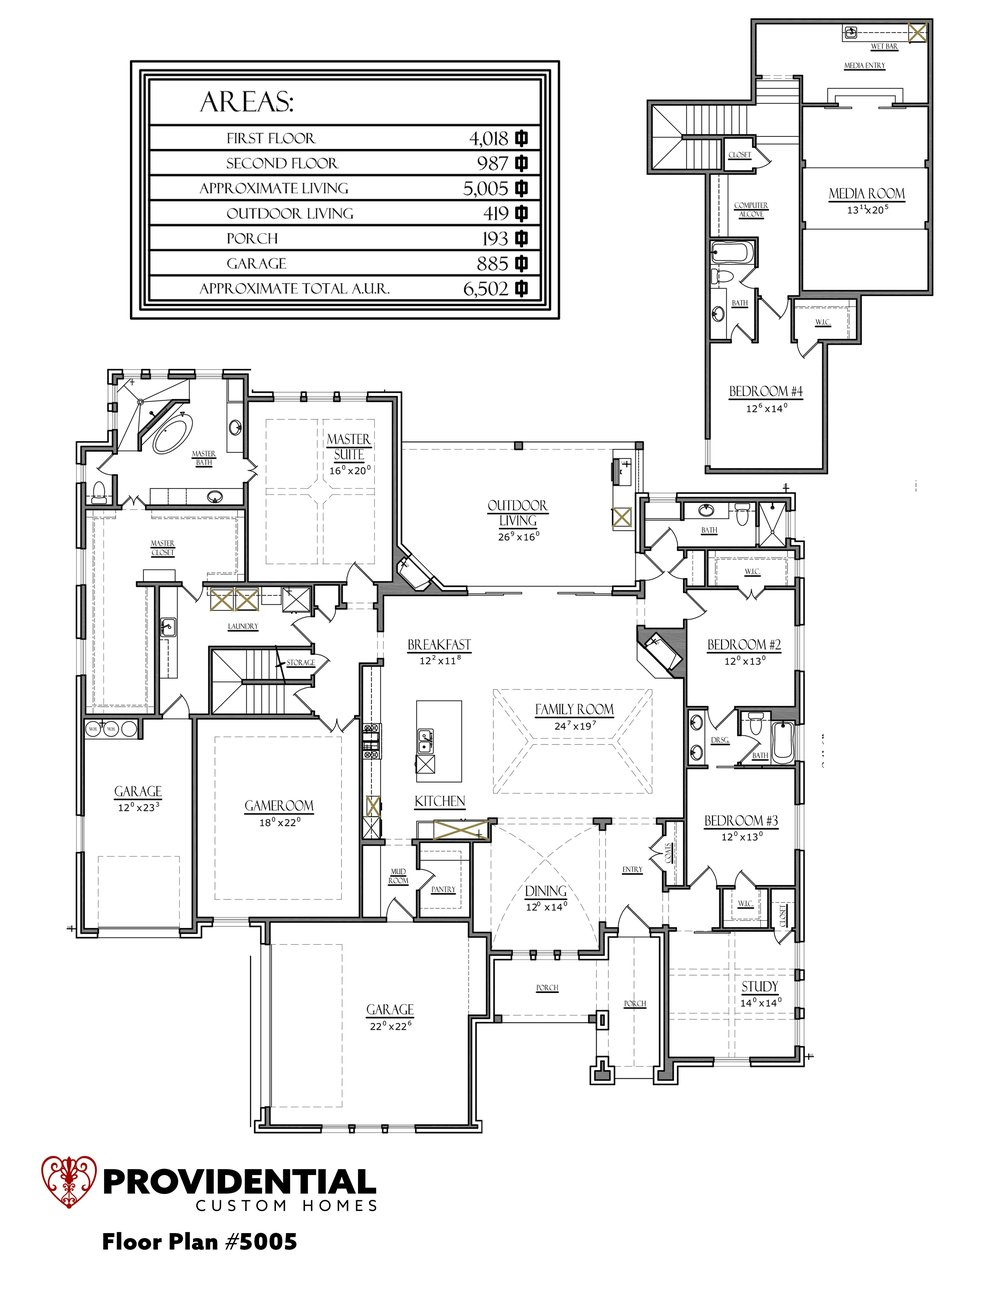 The FLOOR PLAN #5005.jpg